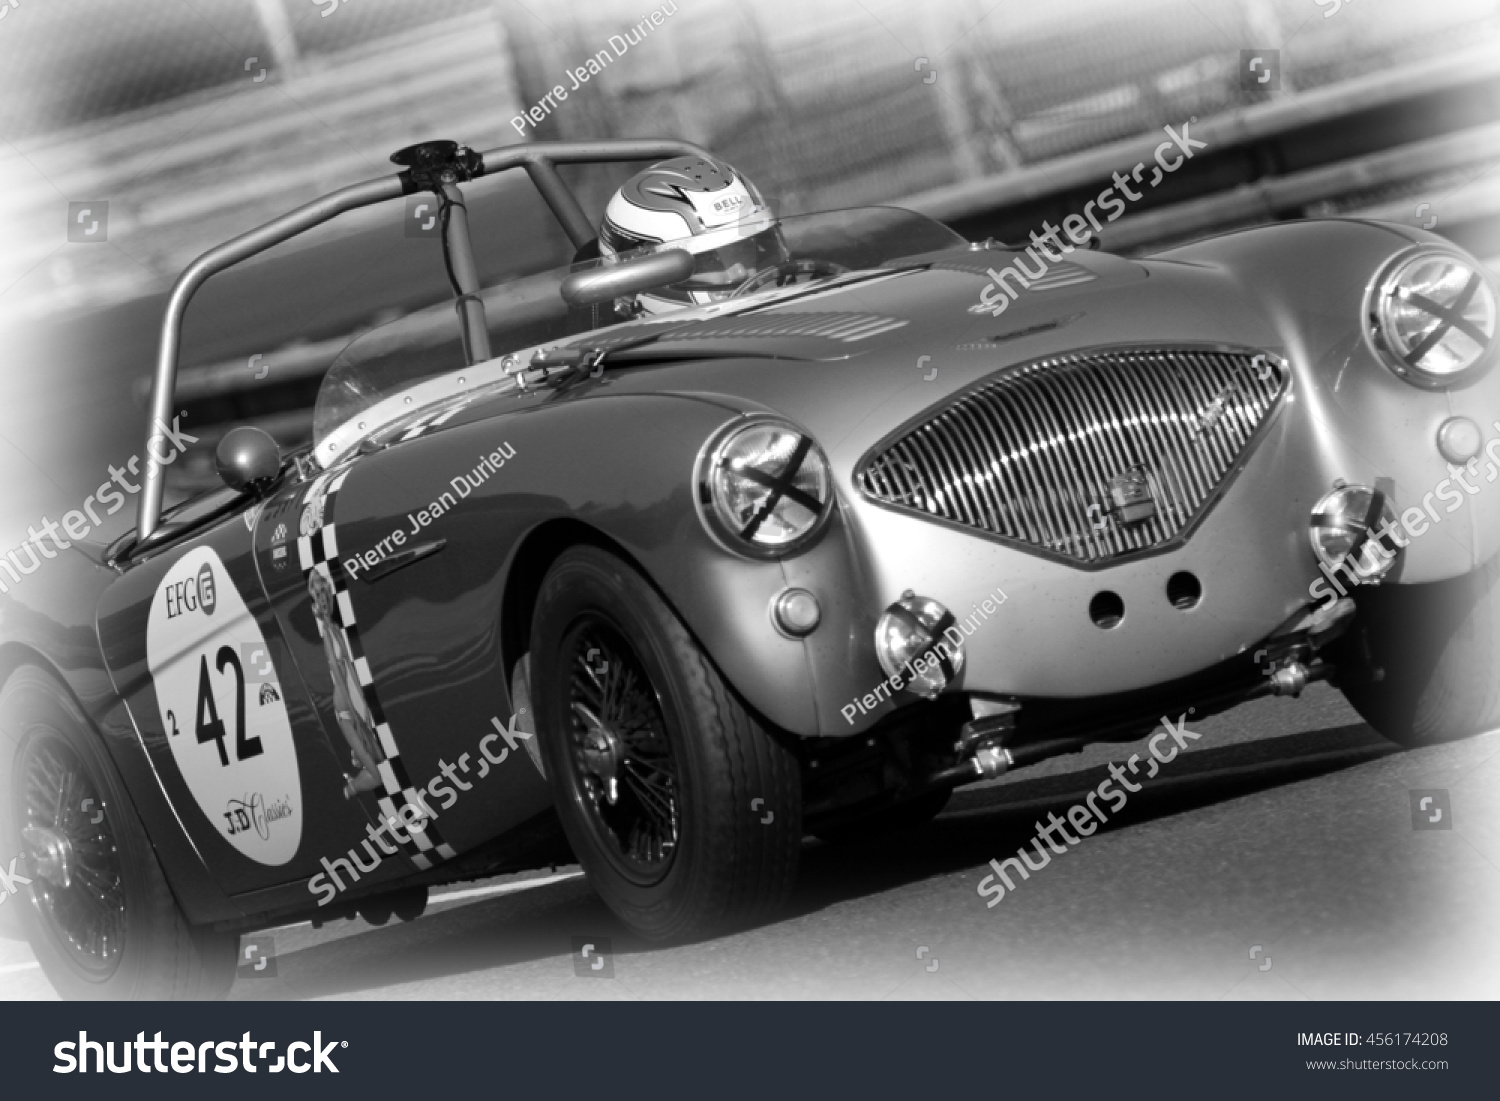 Le Mans France July 9 2016 Stock Photo 456174208 - Shutterstock